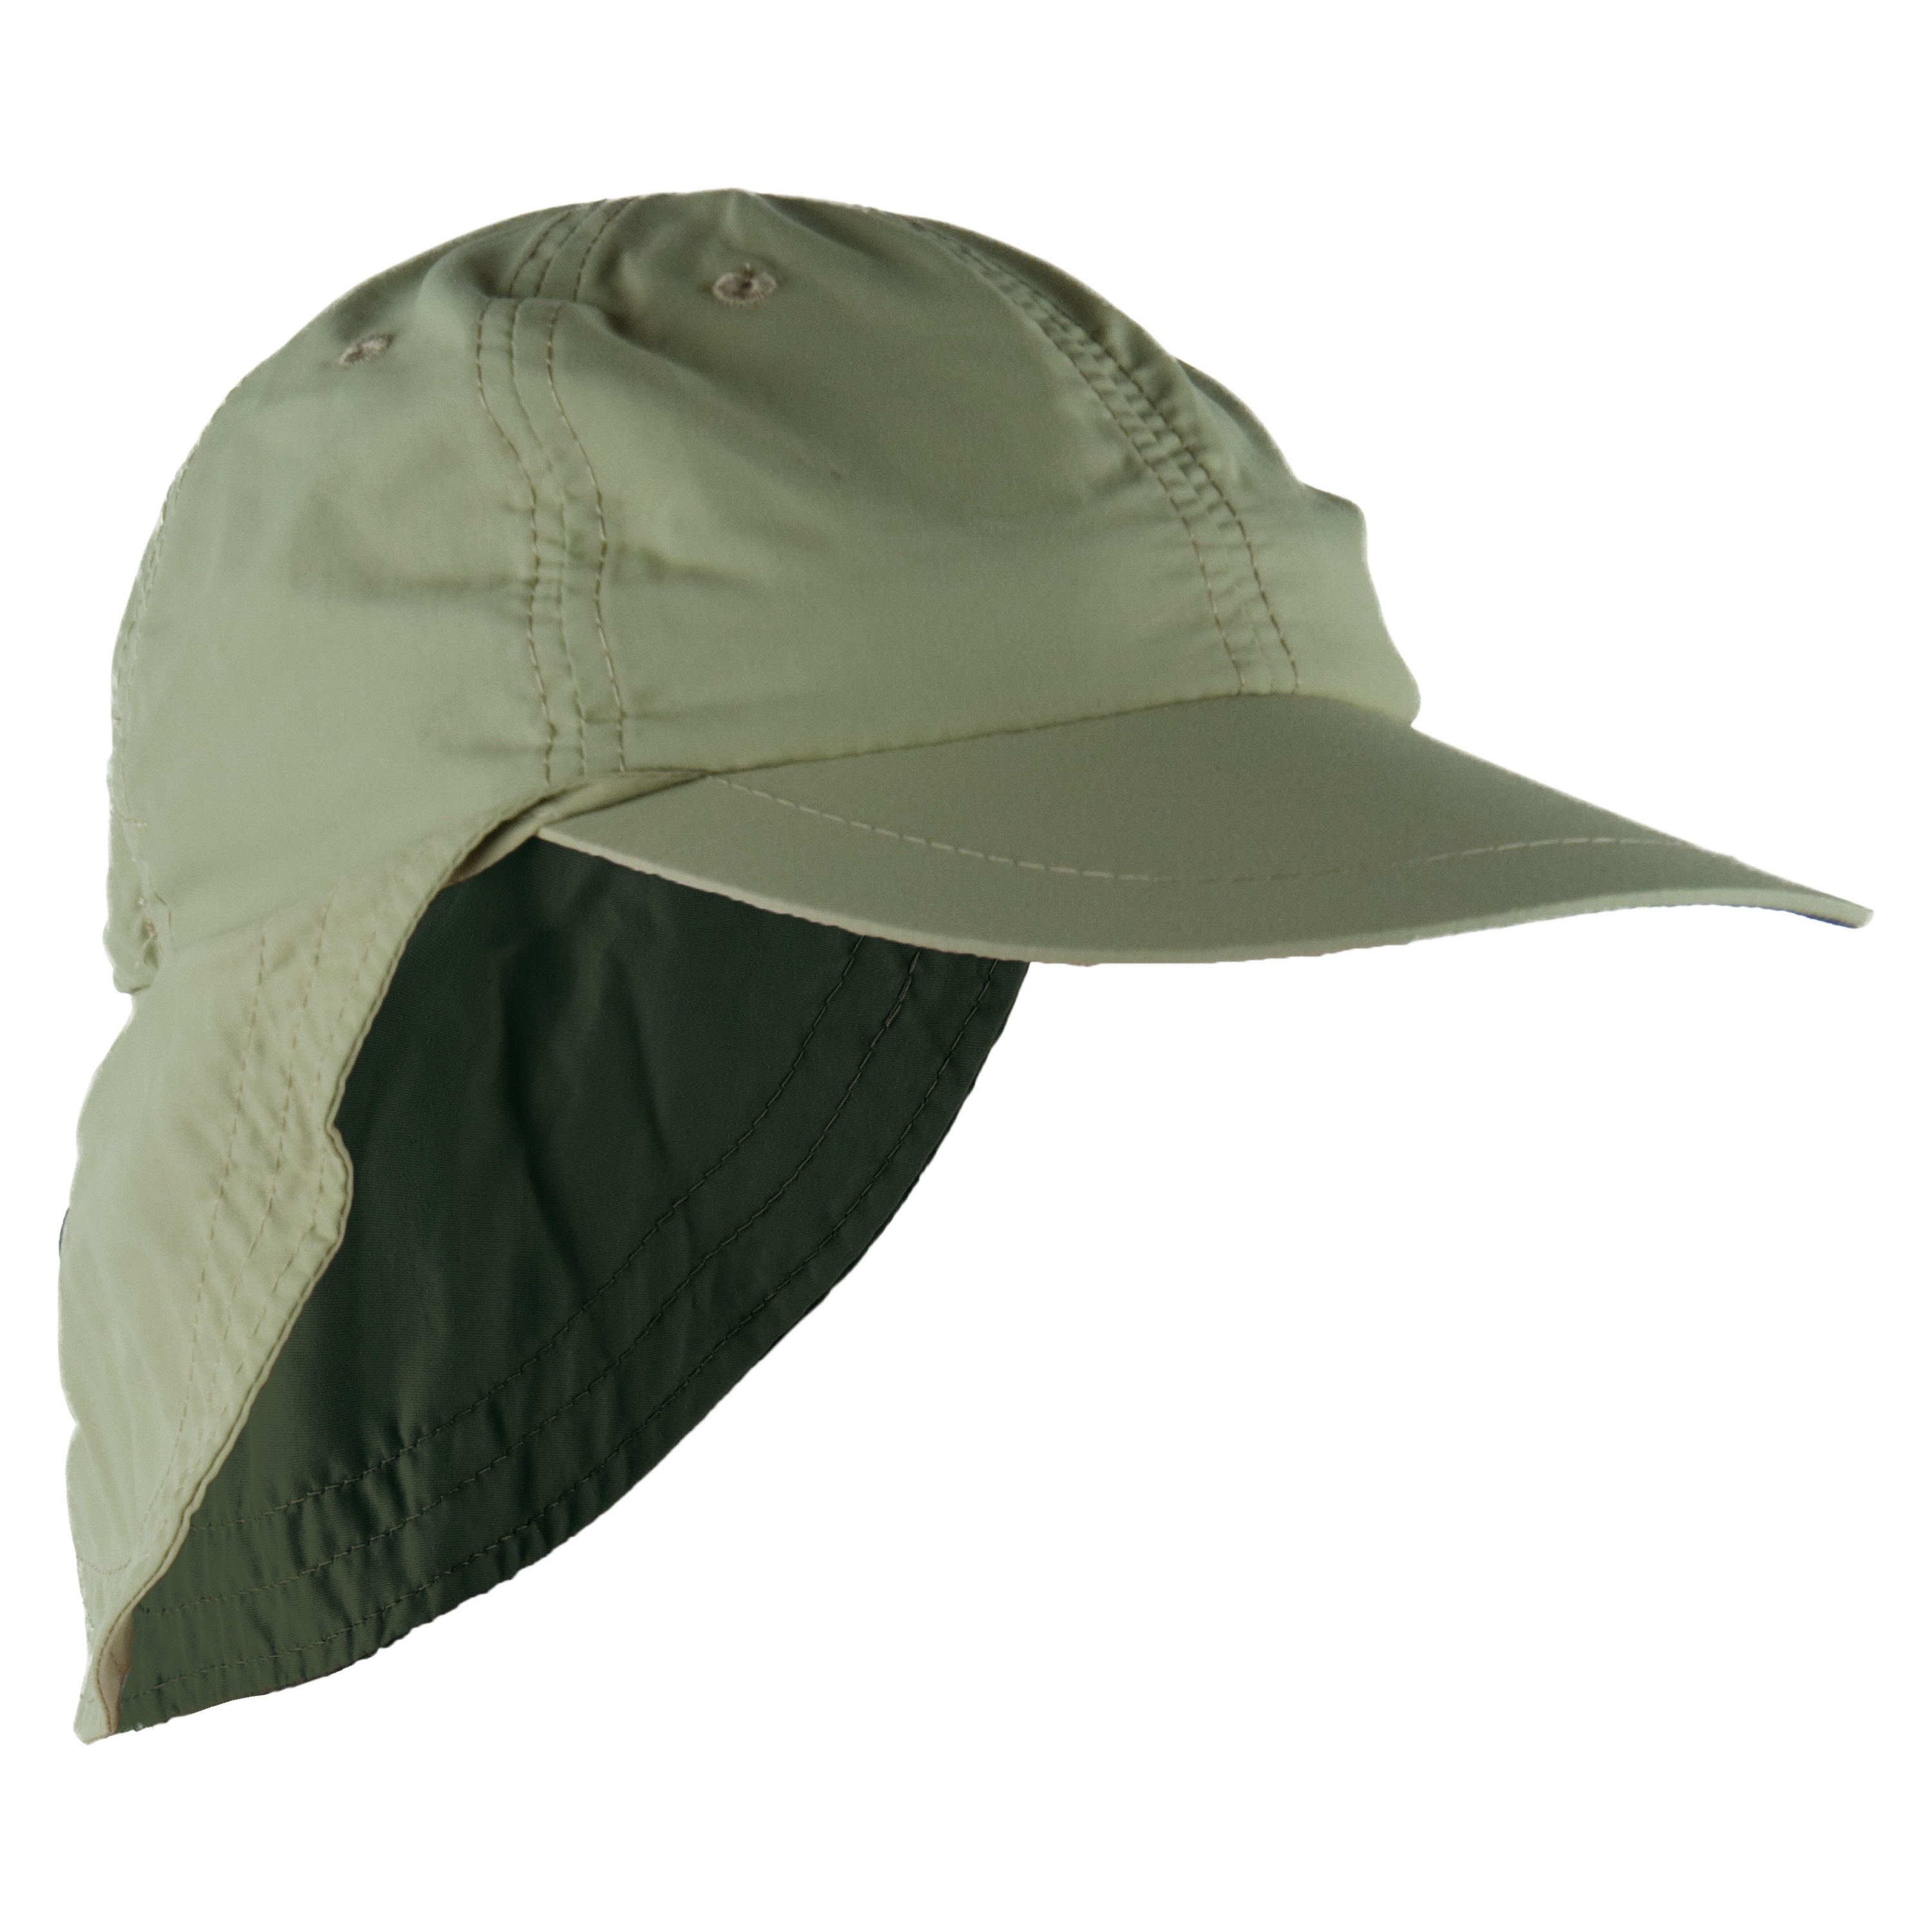 Gorra de Legionario Supplex caqui